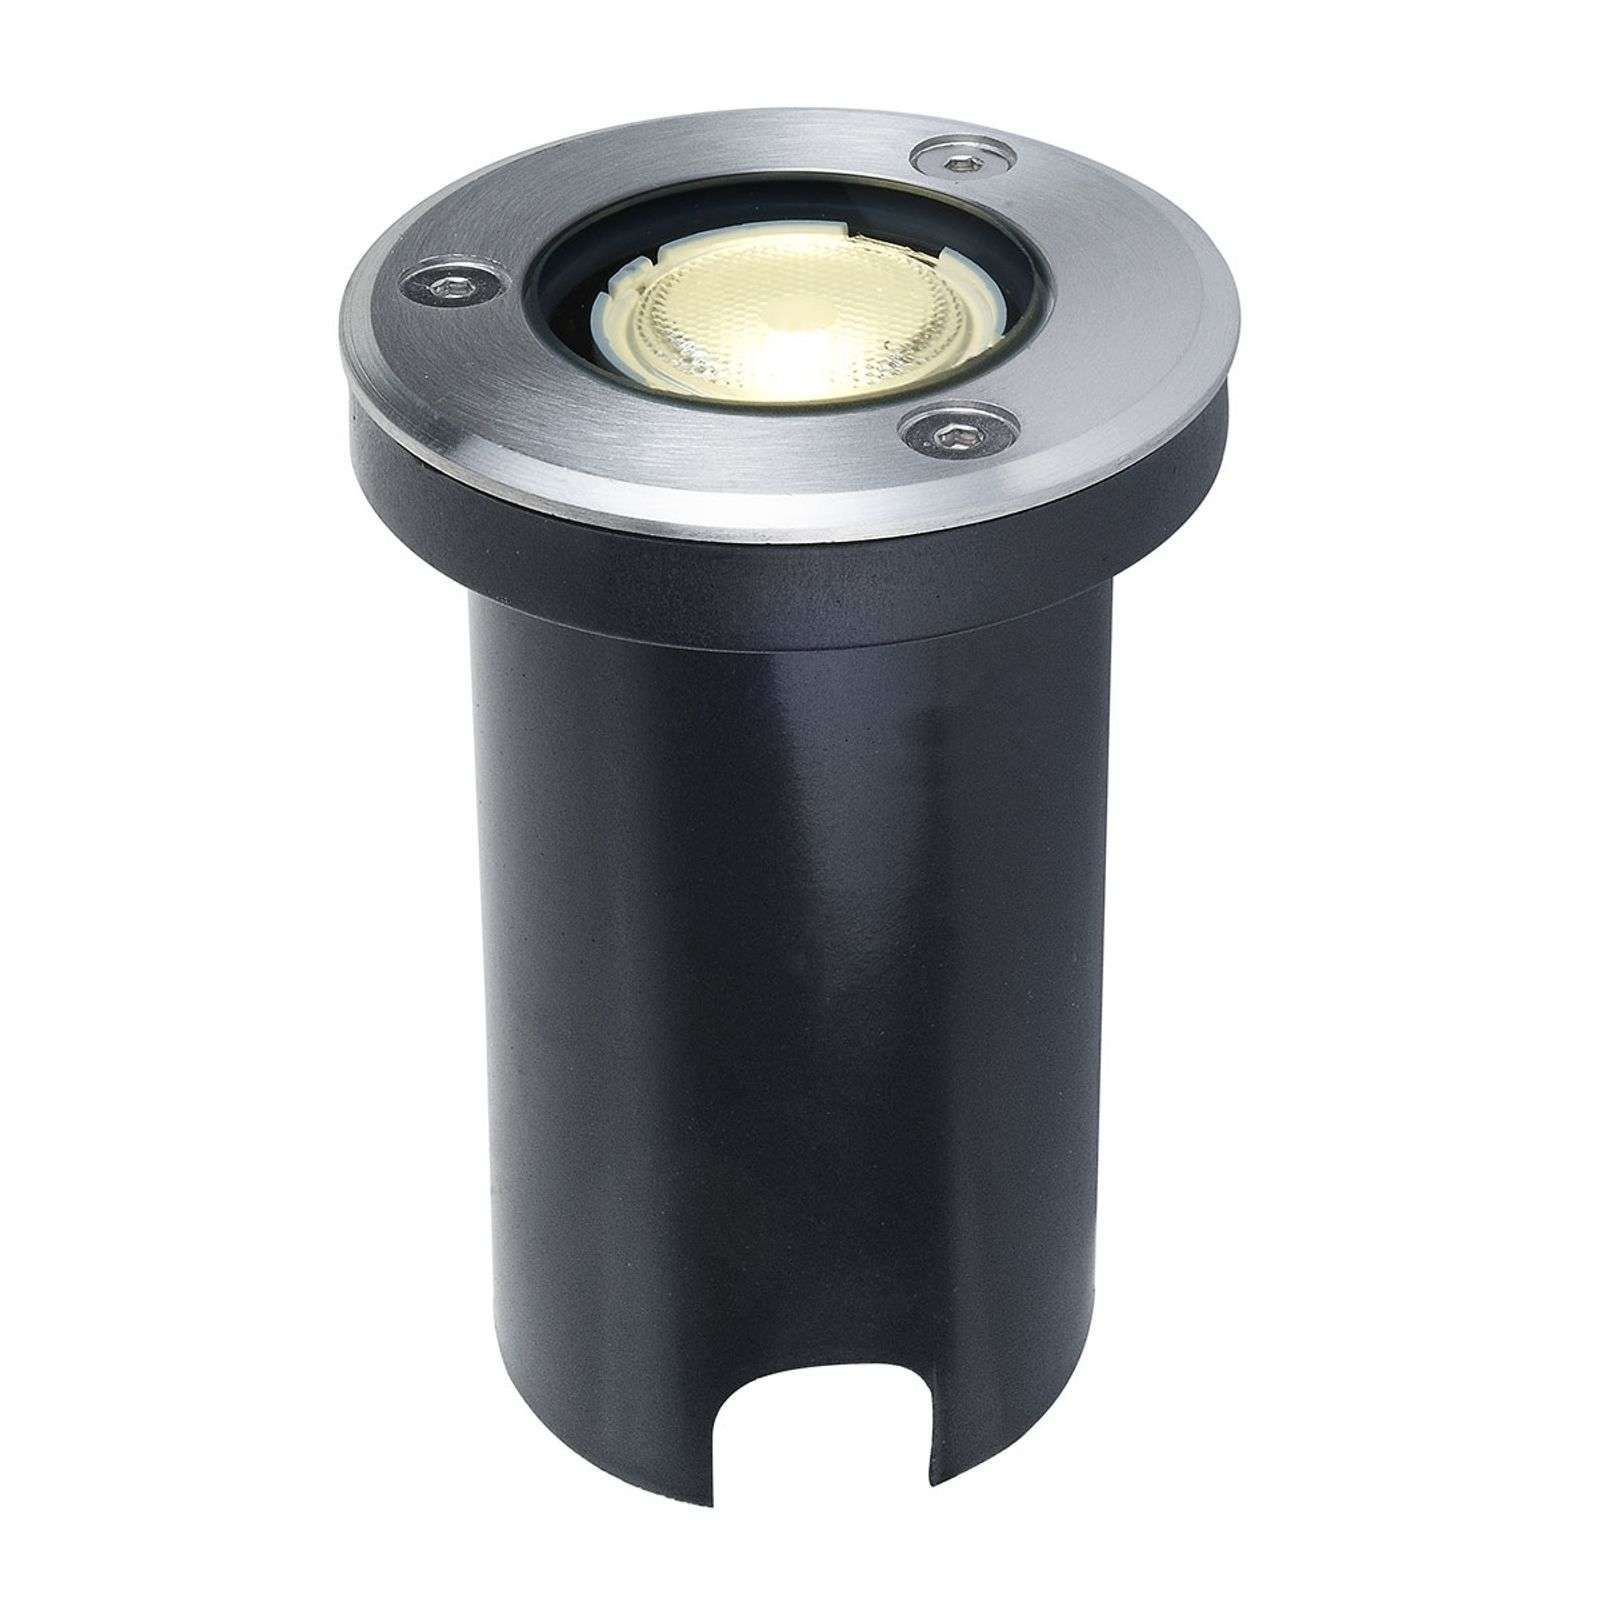 Led Bodenstrahler Außenbereich Ip67 Spot Led Encastrable Dans Le Sol Kenan Inox | Led Encastrable, Spot Led Encastrable, Led